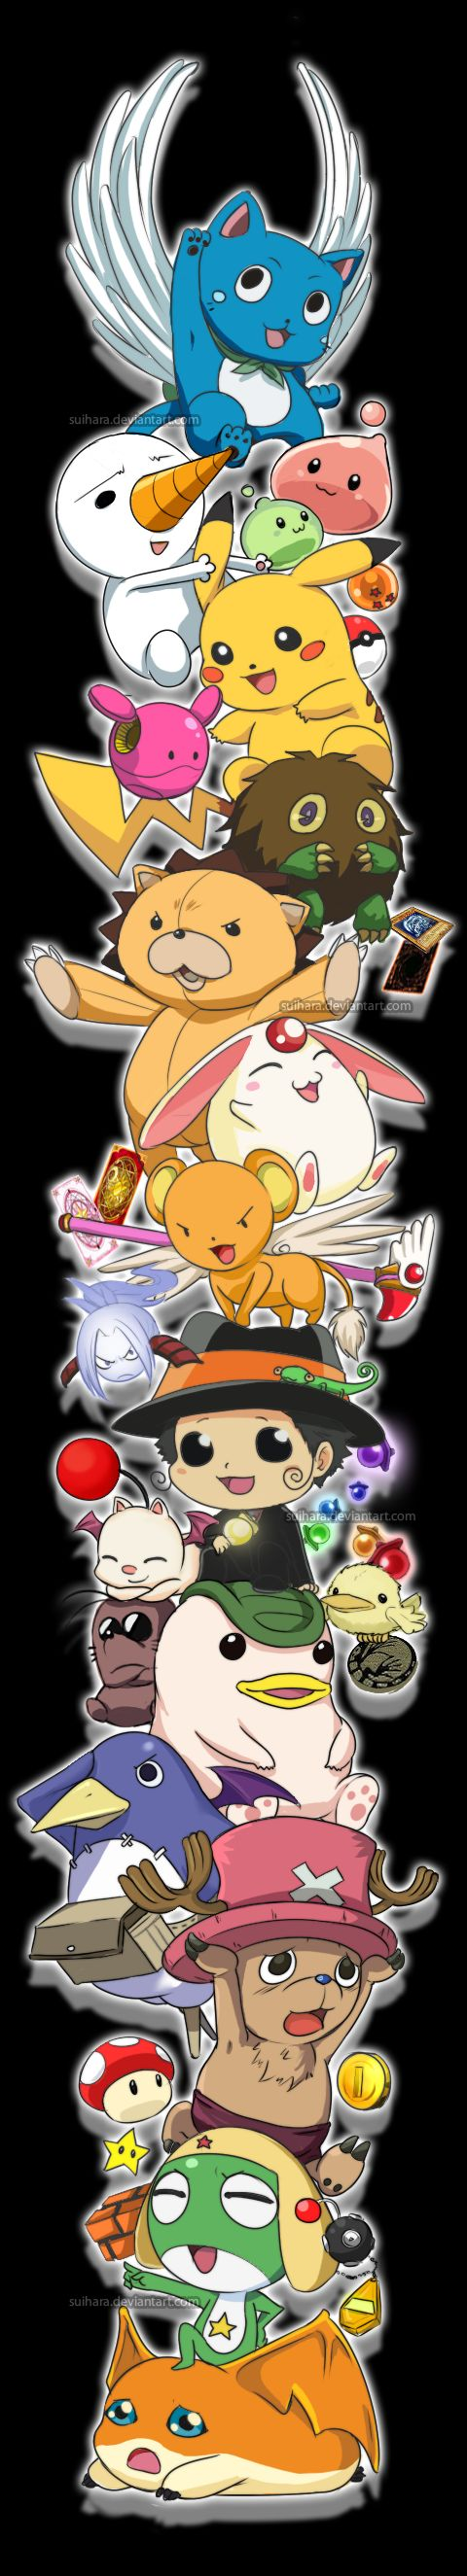 Mascot Crossover by Suihara.deviantart.com on @deviantART - i need to watch more anime. I only got about half of these